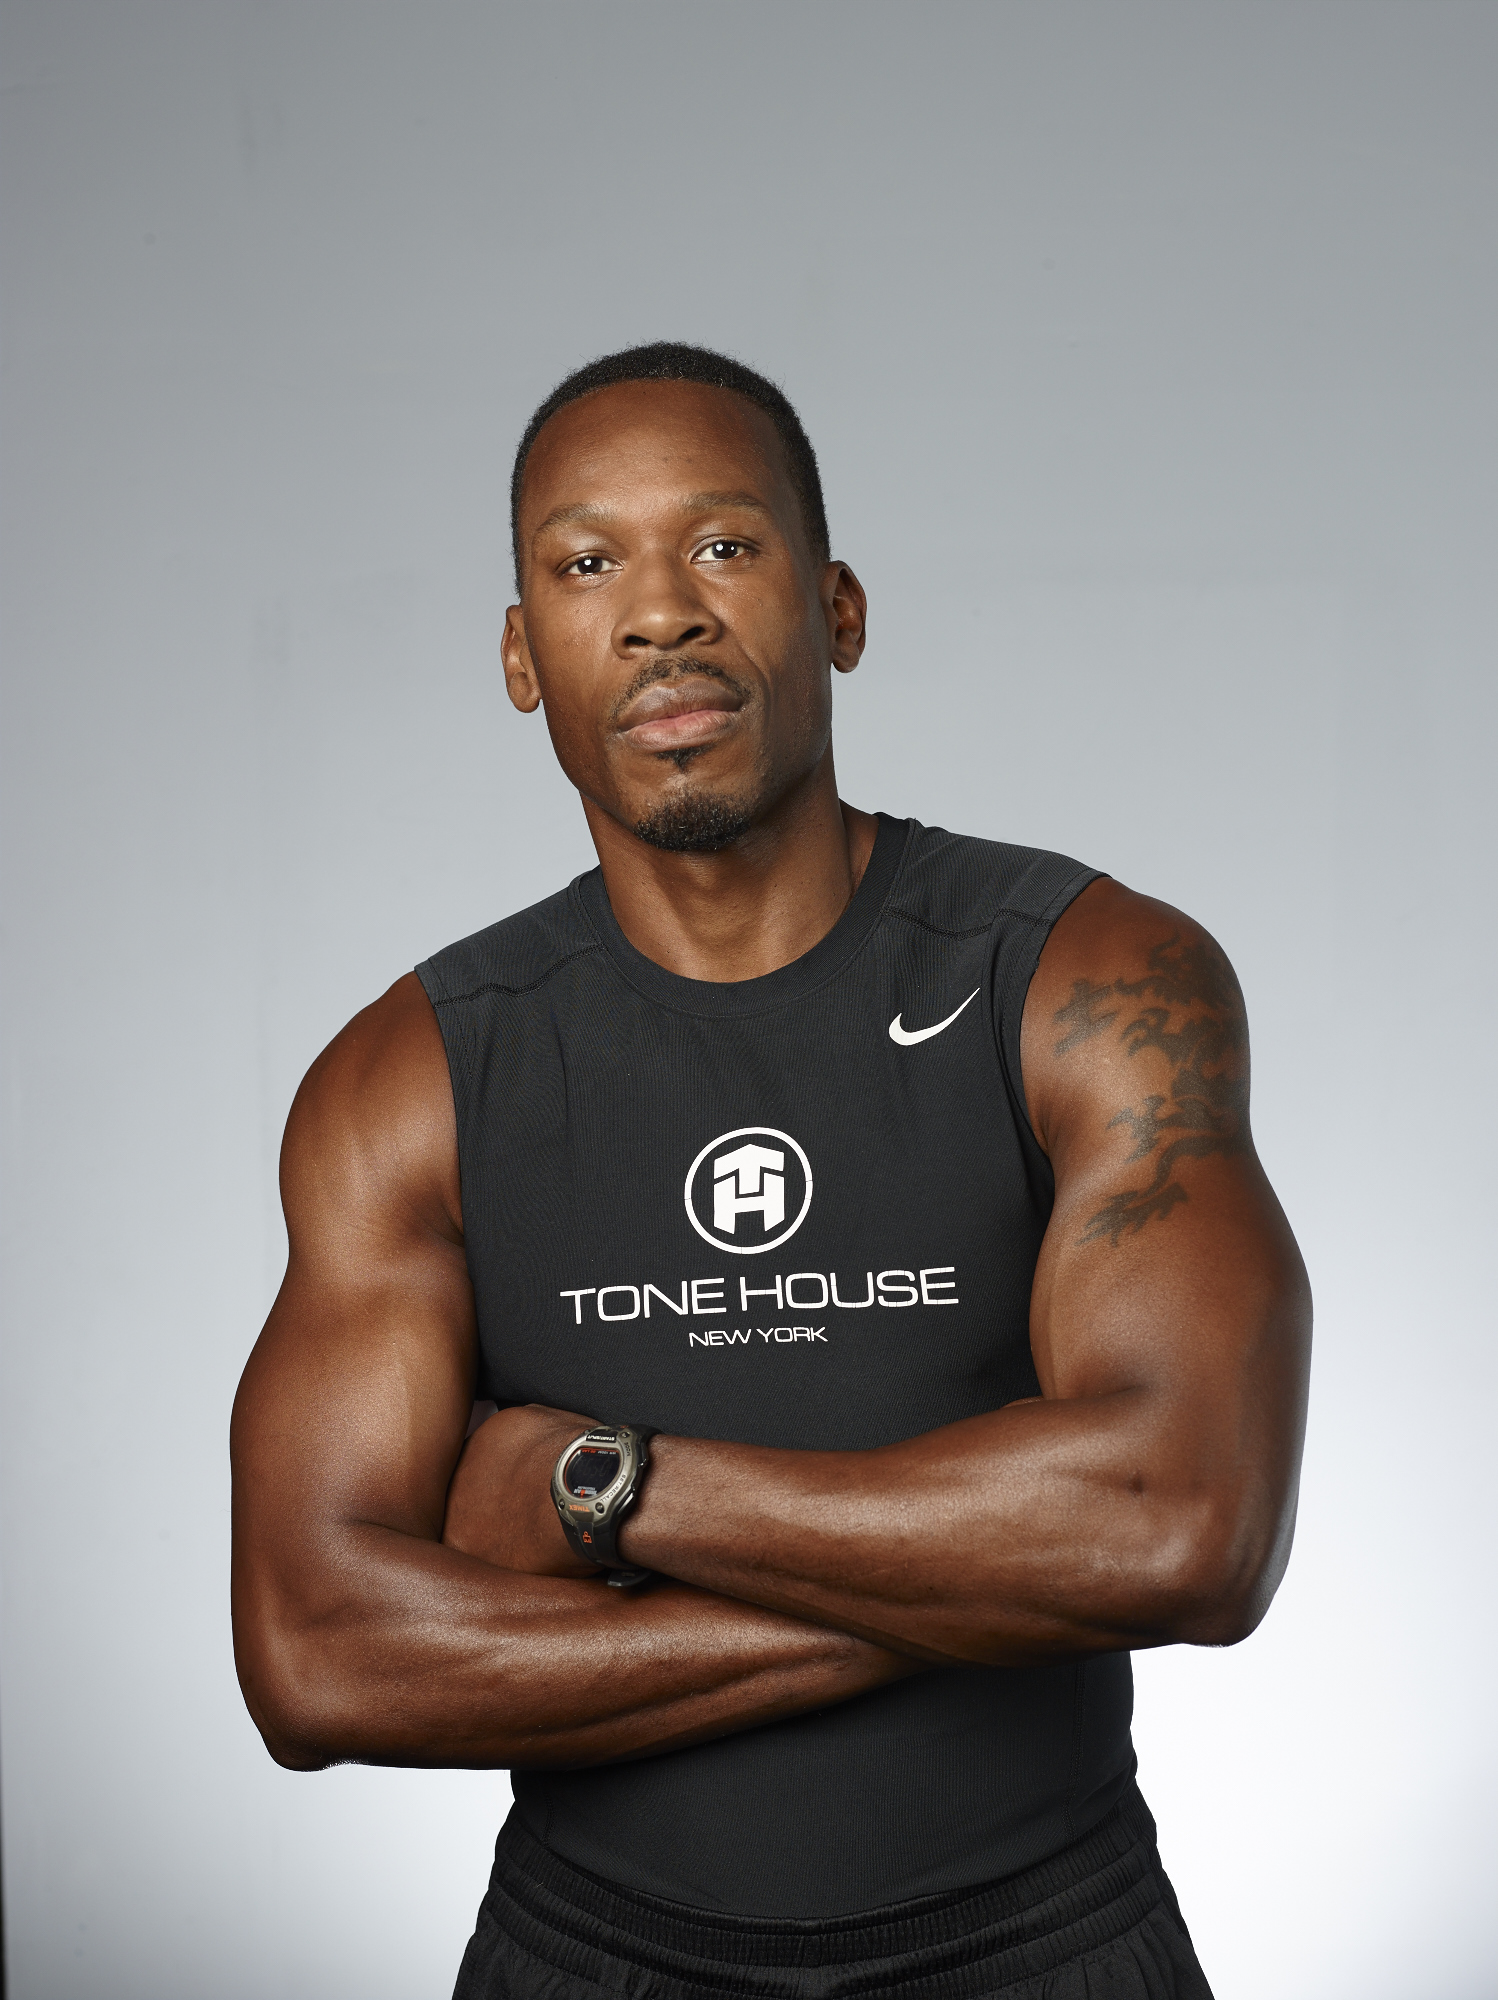 From Basketball Player, To Tone House instructor.